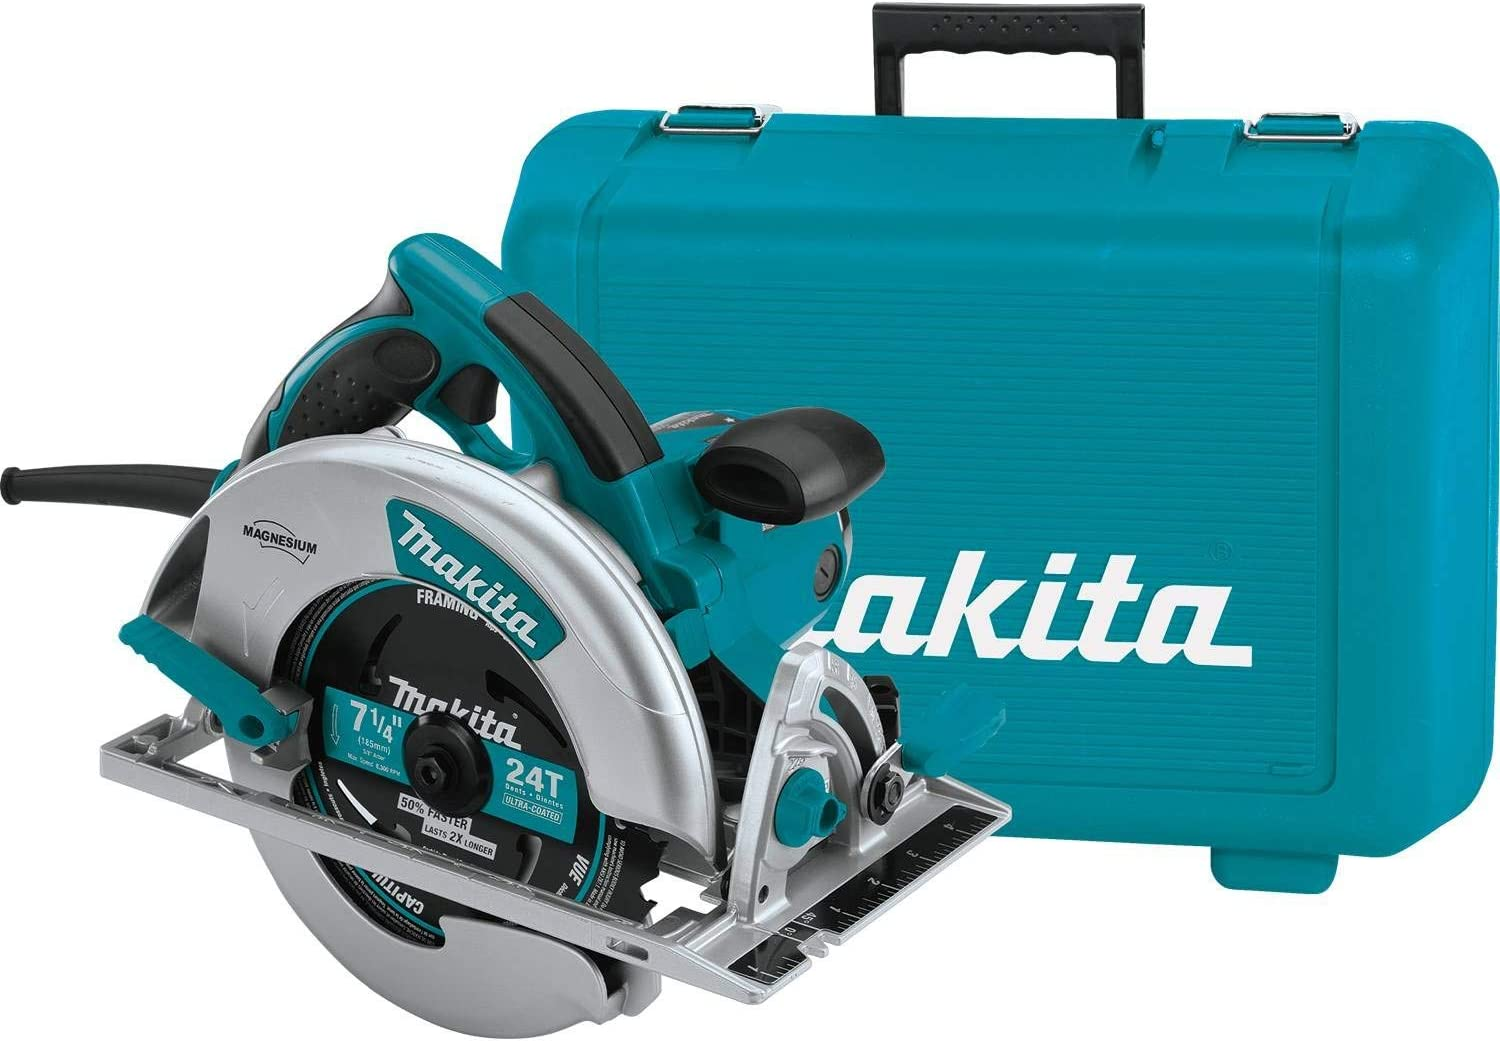 3. Makita 5007MG Magnesium Circular Saw